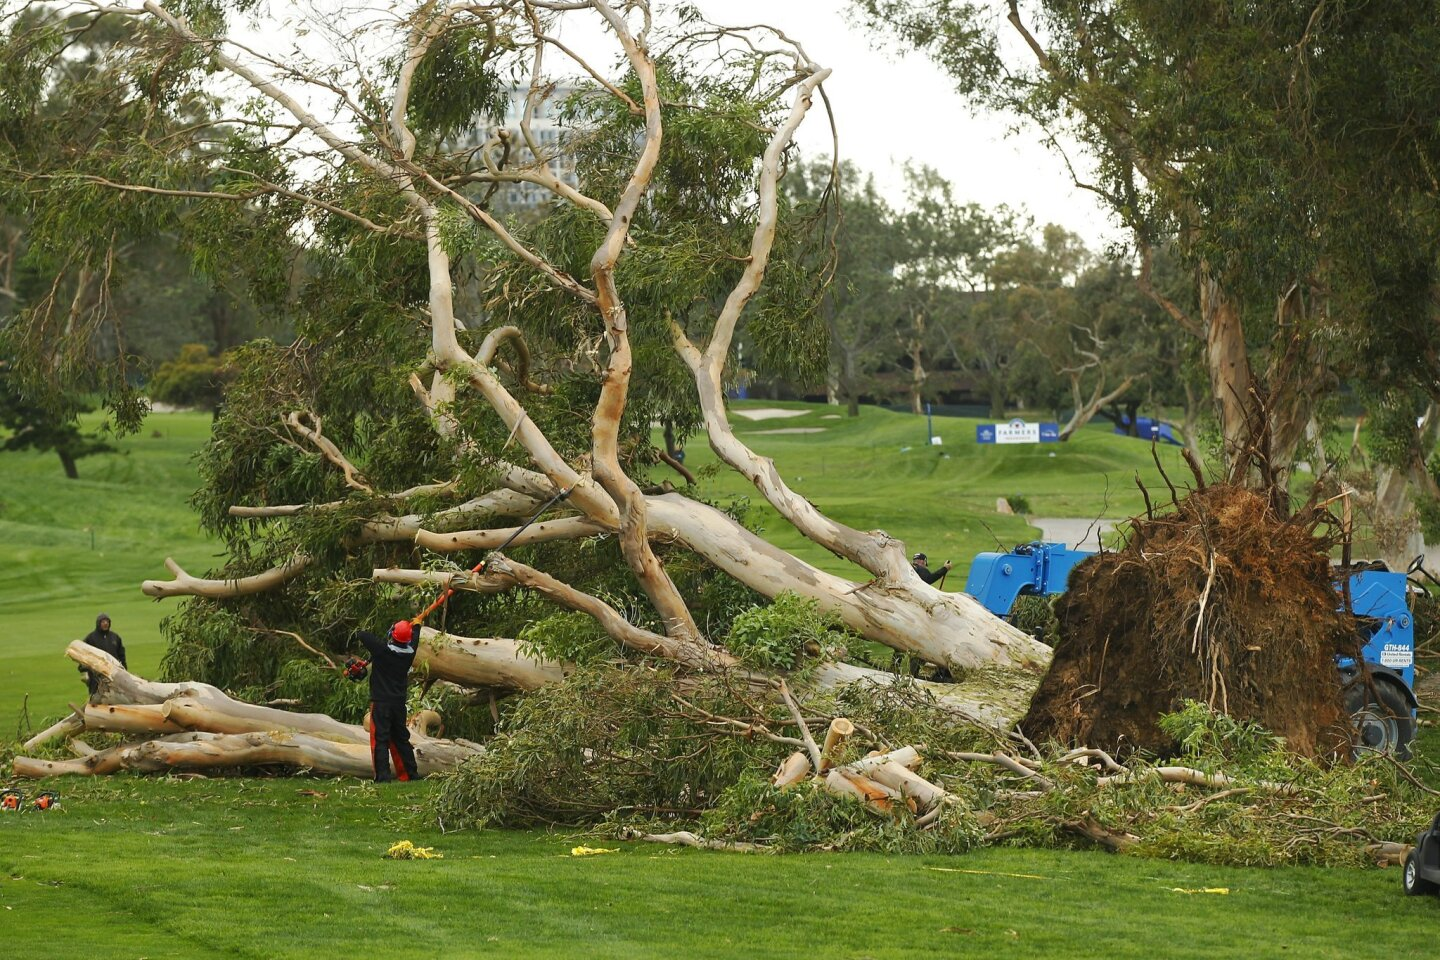 Workers clean up an iconic eucalyptus tree the fell on the 15th hole of south course at Torrey Pines, delaying the Farmers Insurance Open. Play resumed at 10am Monday.